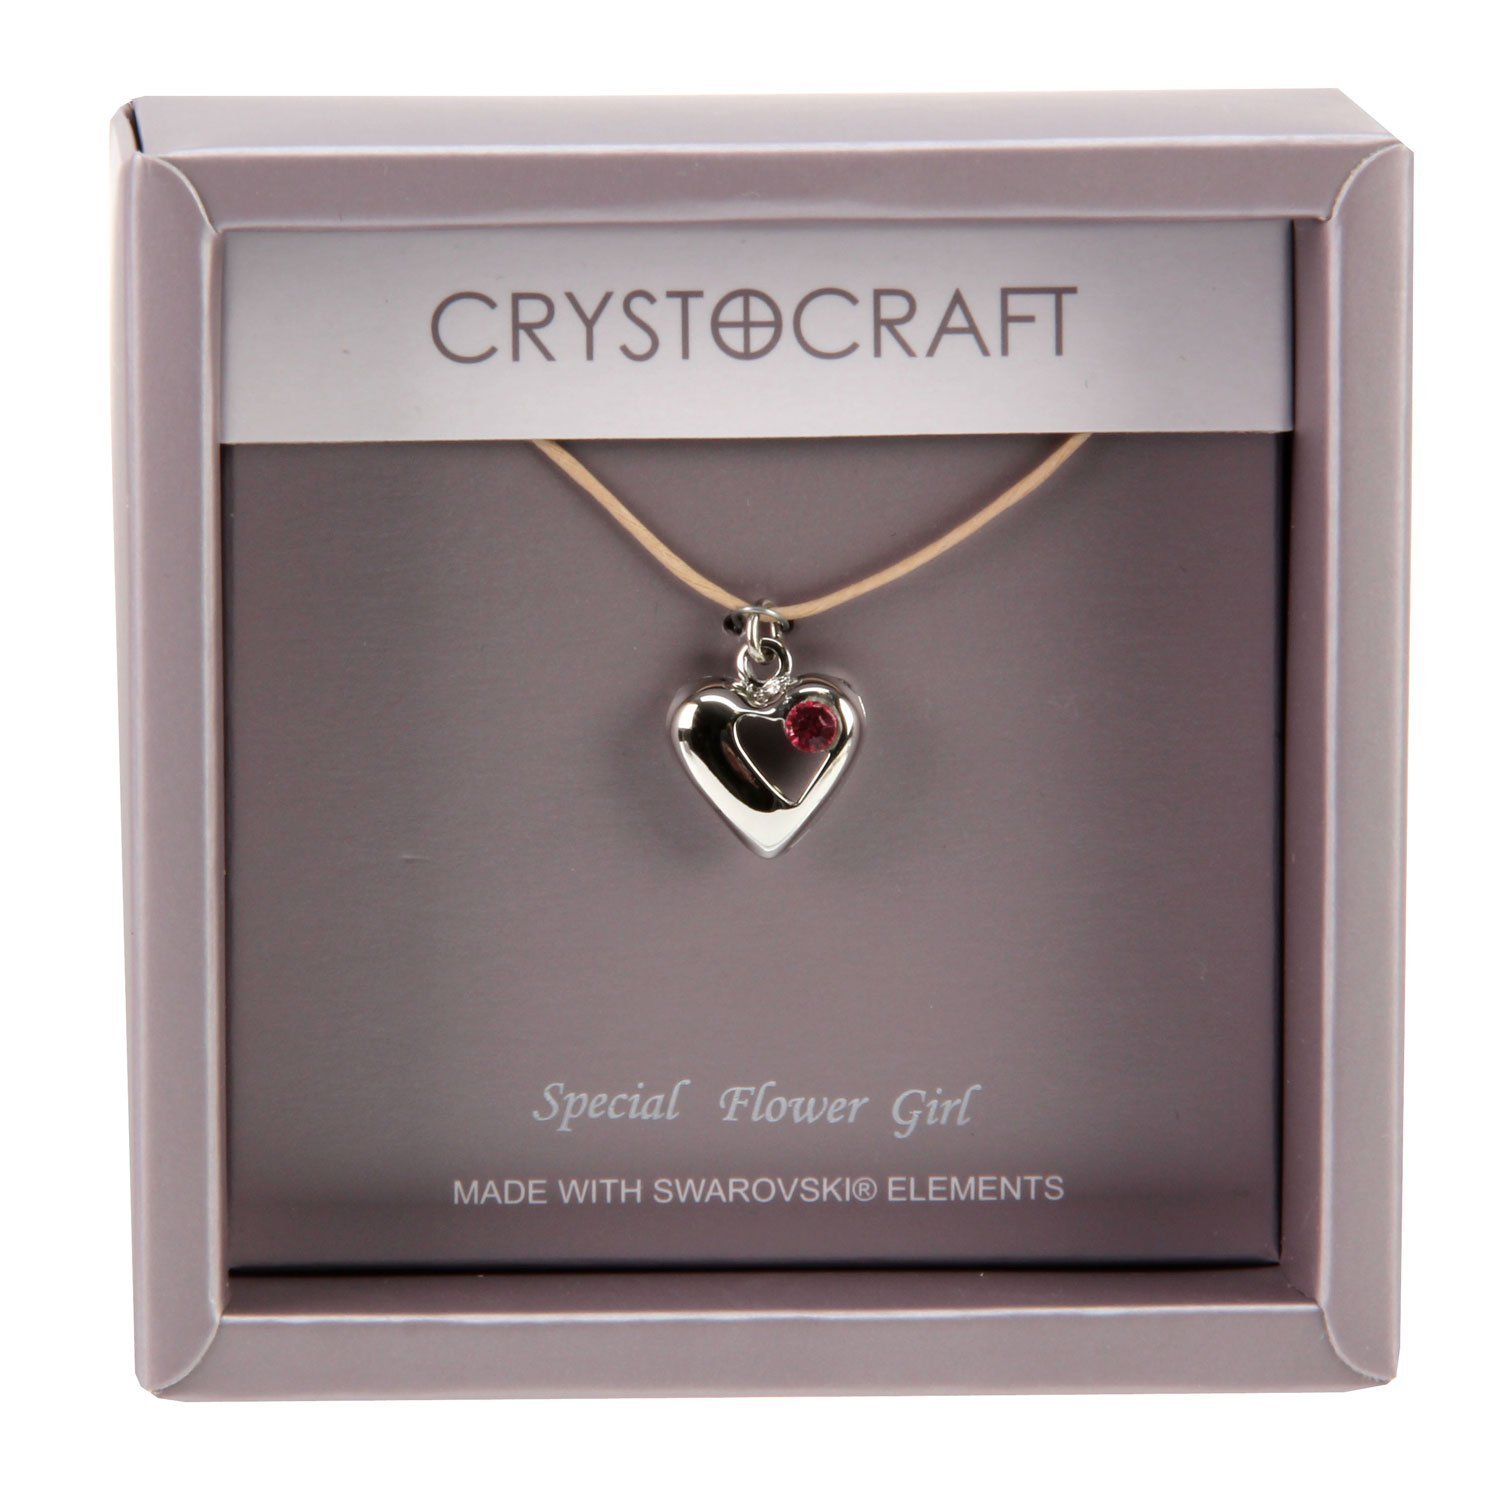 Crystocraft Our Special Flower Girl Necklace with Heart Pendant FTY2V